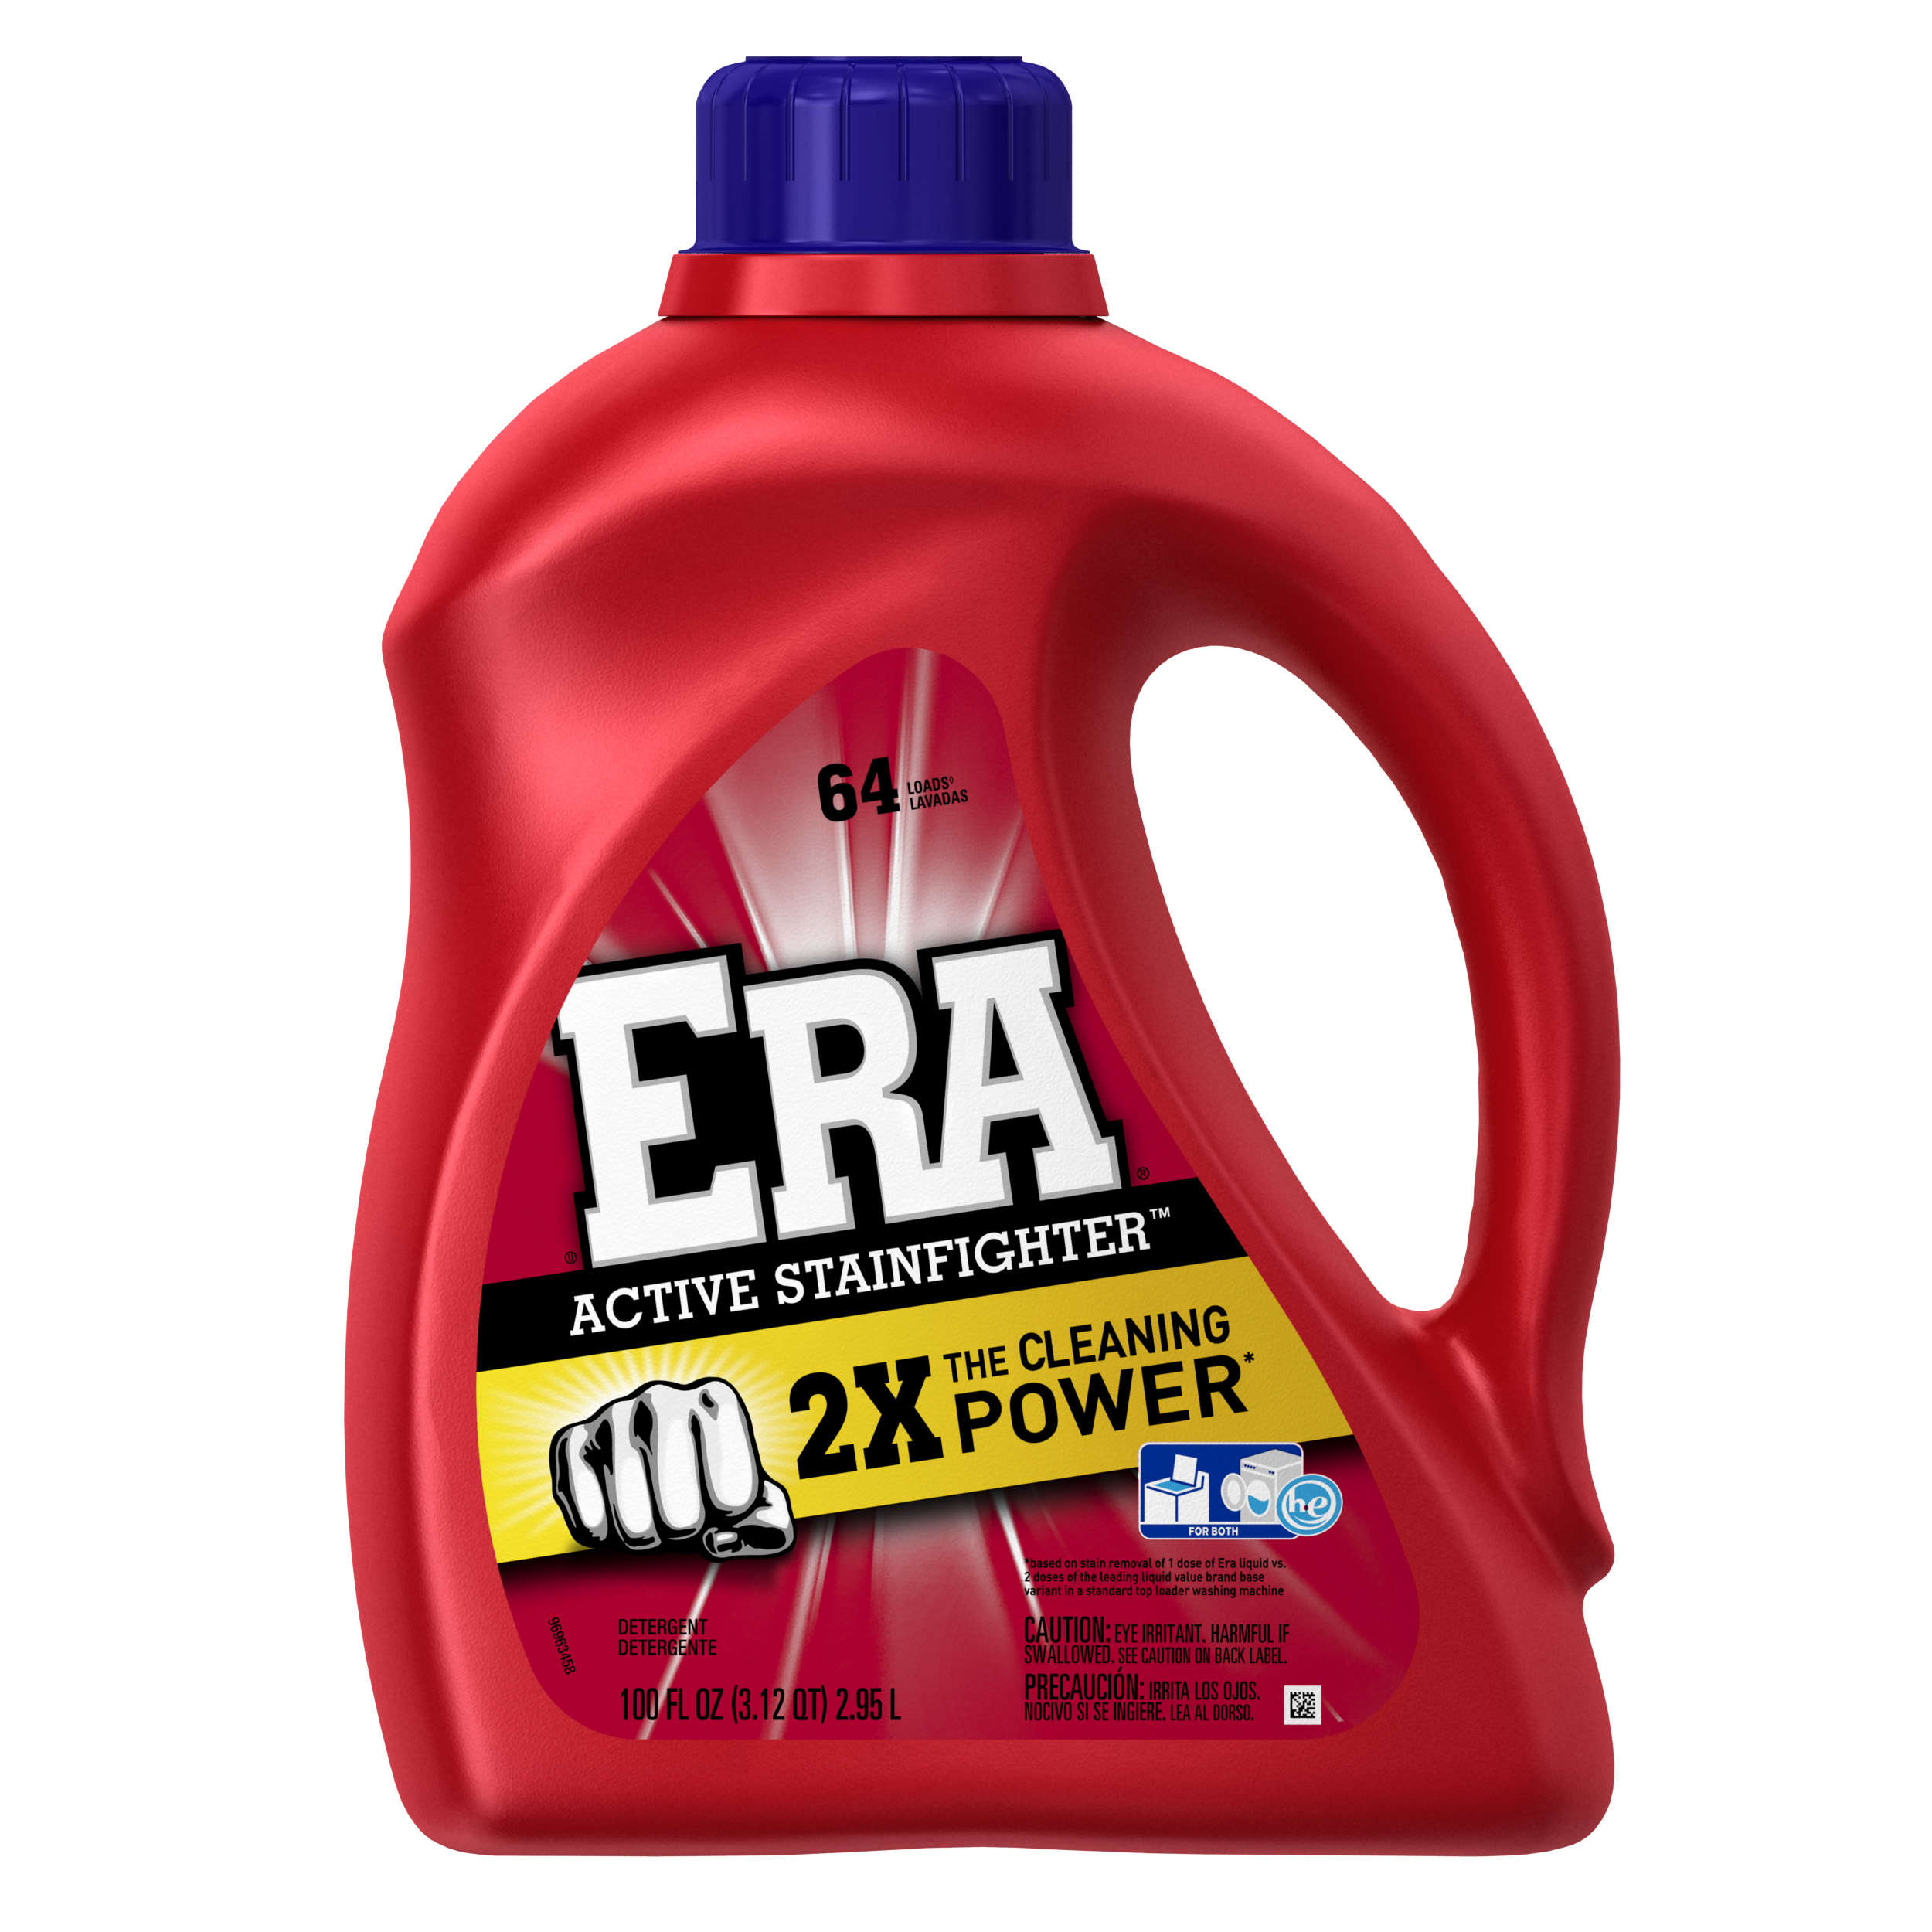 Era 2X Ultra Active Stainfighter Formula Regular Liquid Detergent 64 Loads 100 Fl Oz